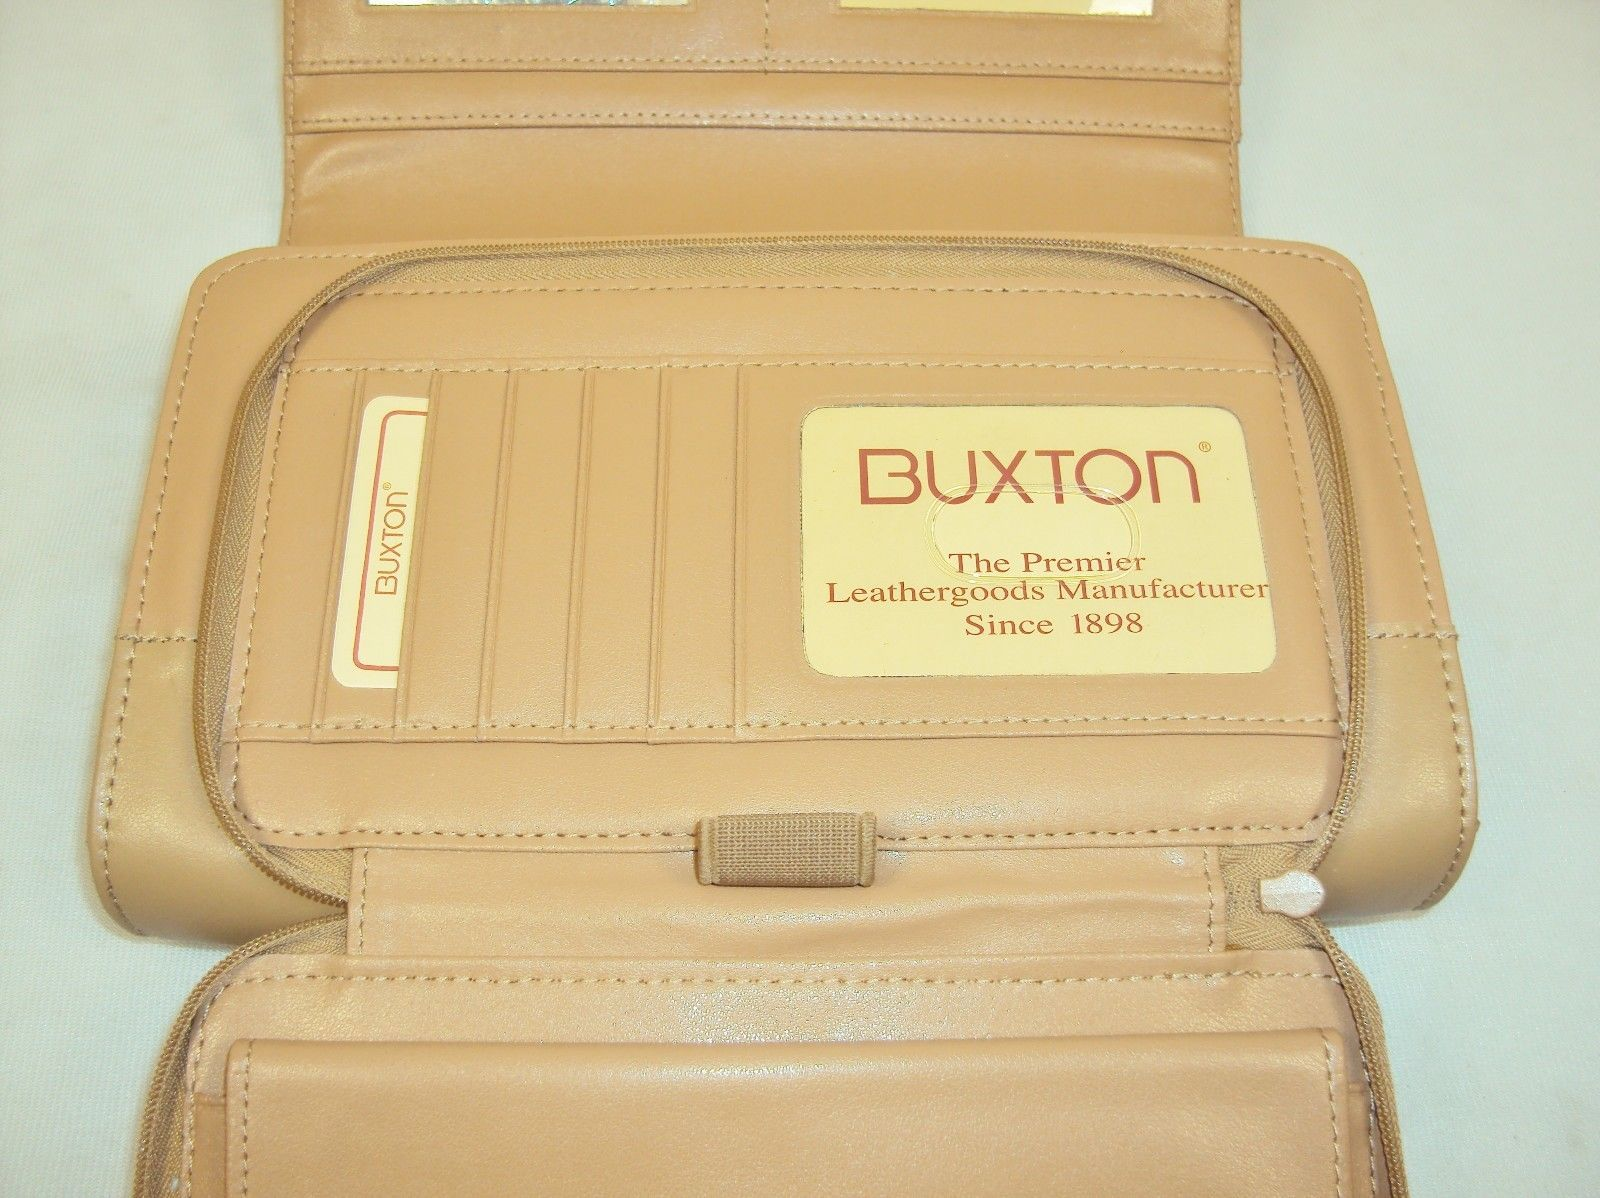 Buxton Beige Leather Clutch Purse w/Matching Checkbook, Key Ring, Lipstick Caddy